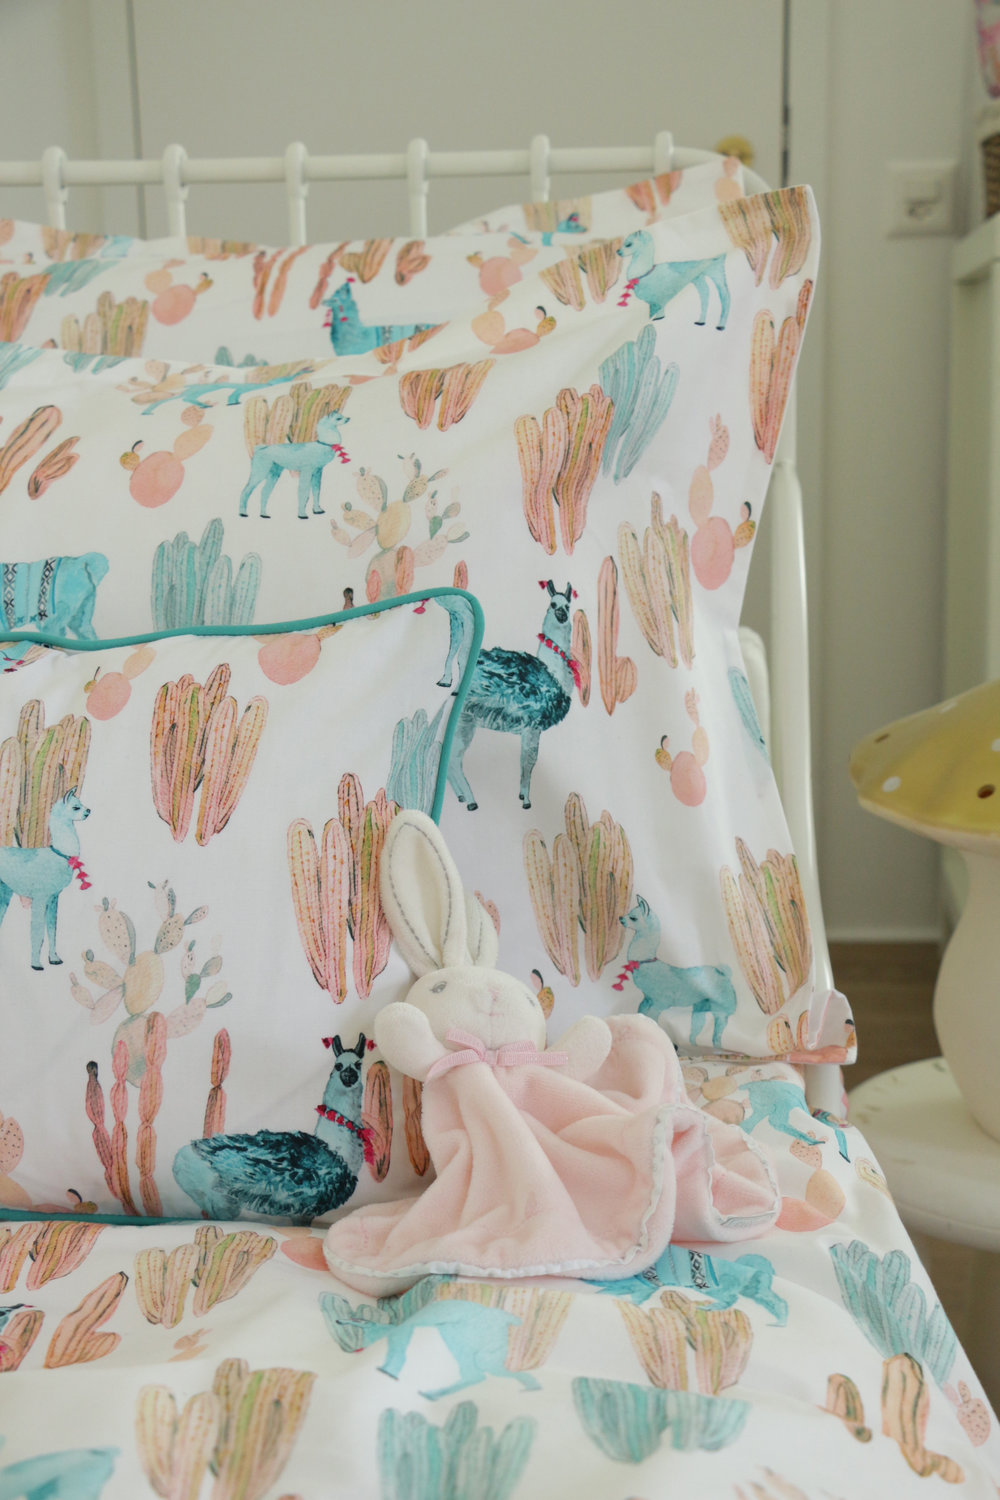 ALTIPLANO_Bedlinens_Turquoise_Coral_Lamas_AMBIANCE.jpg